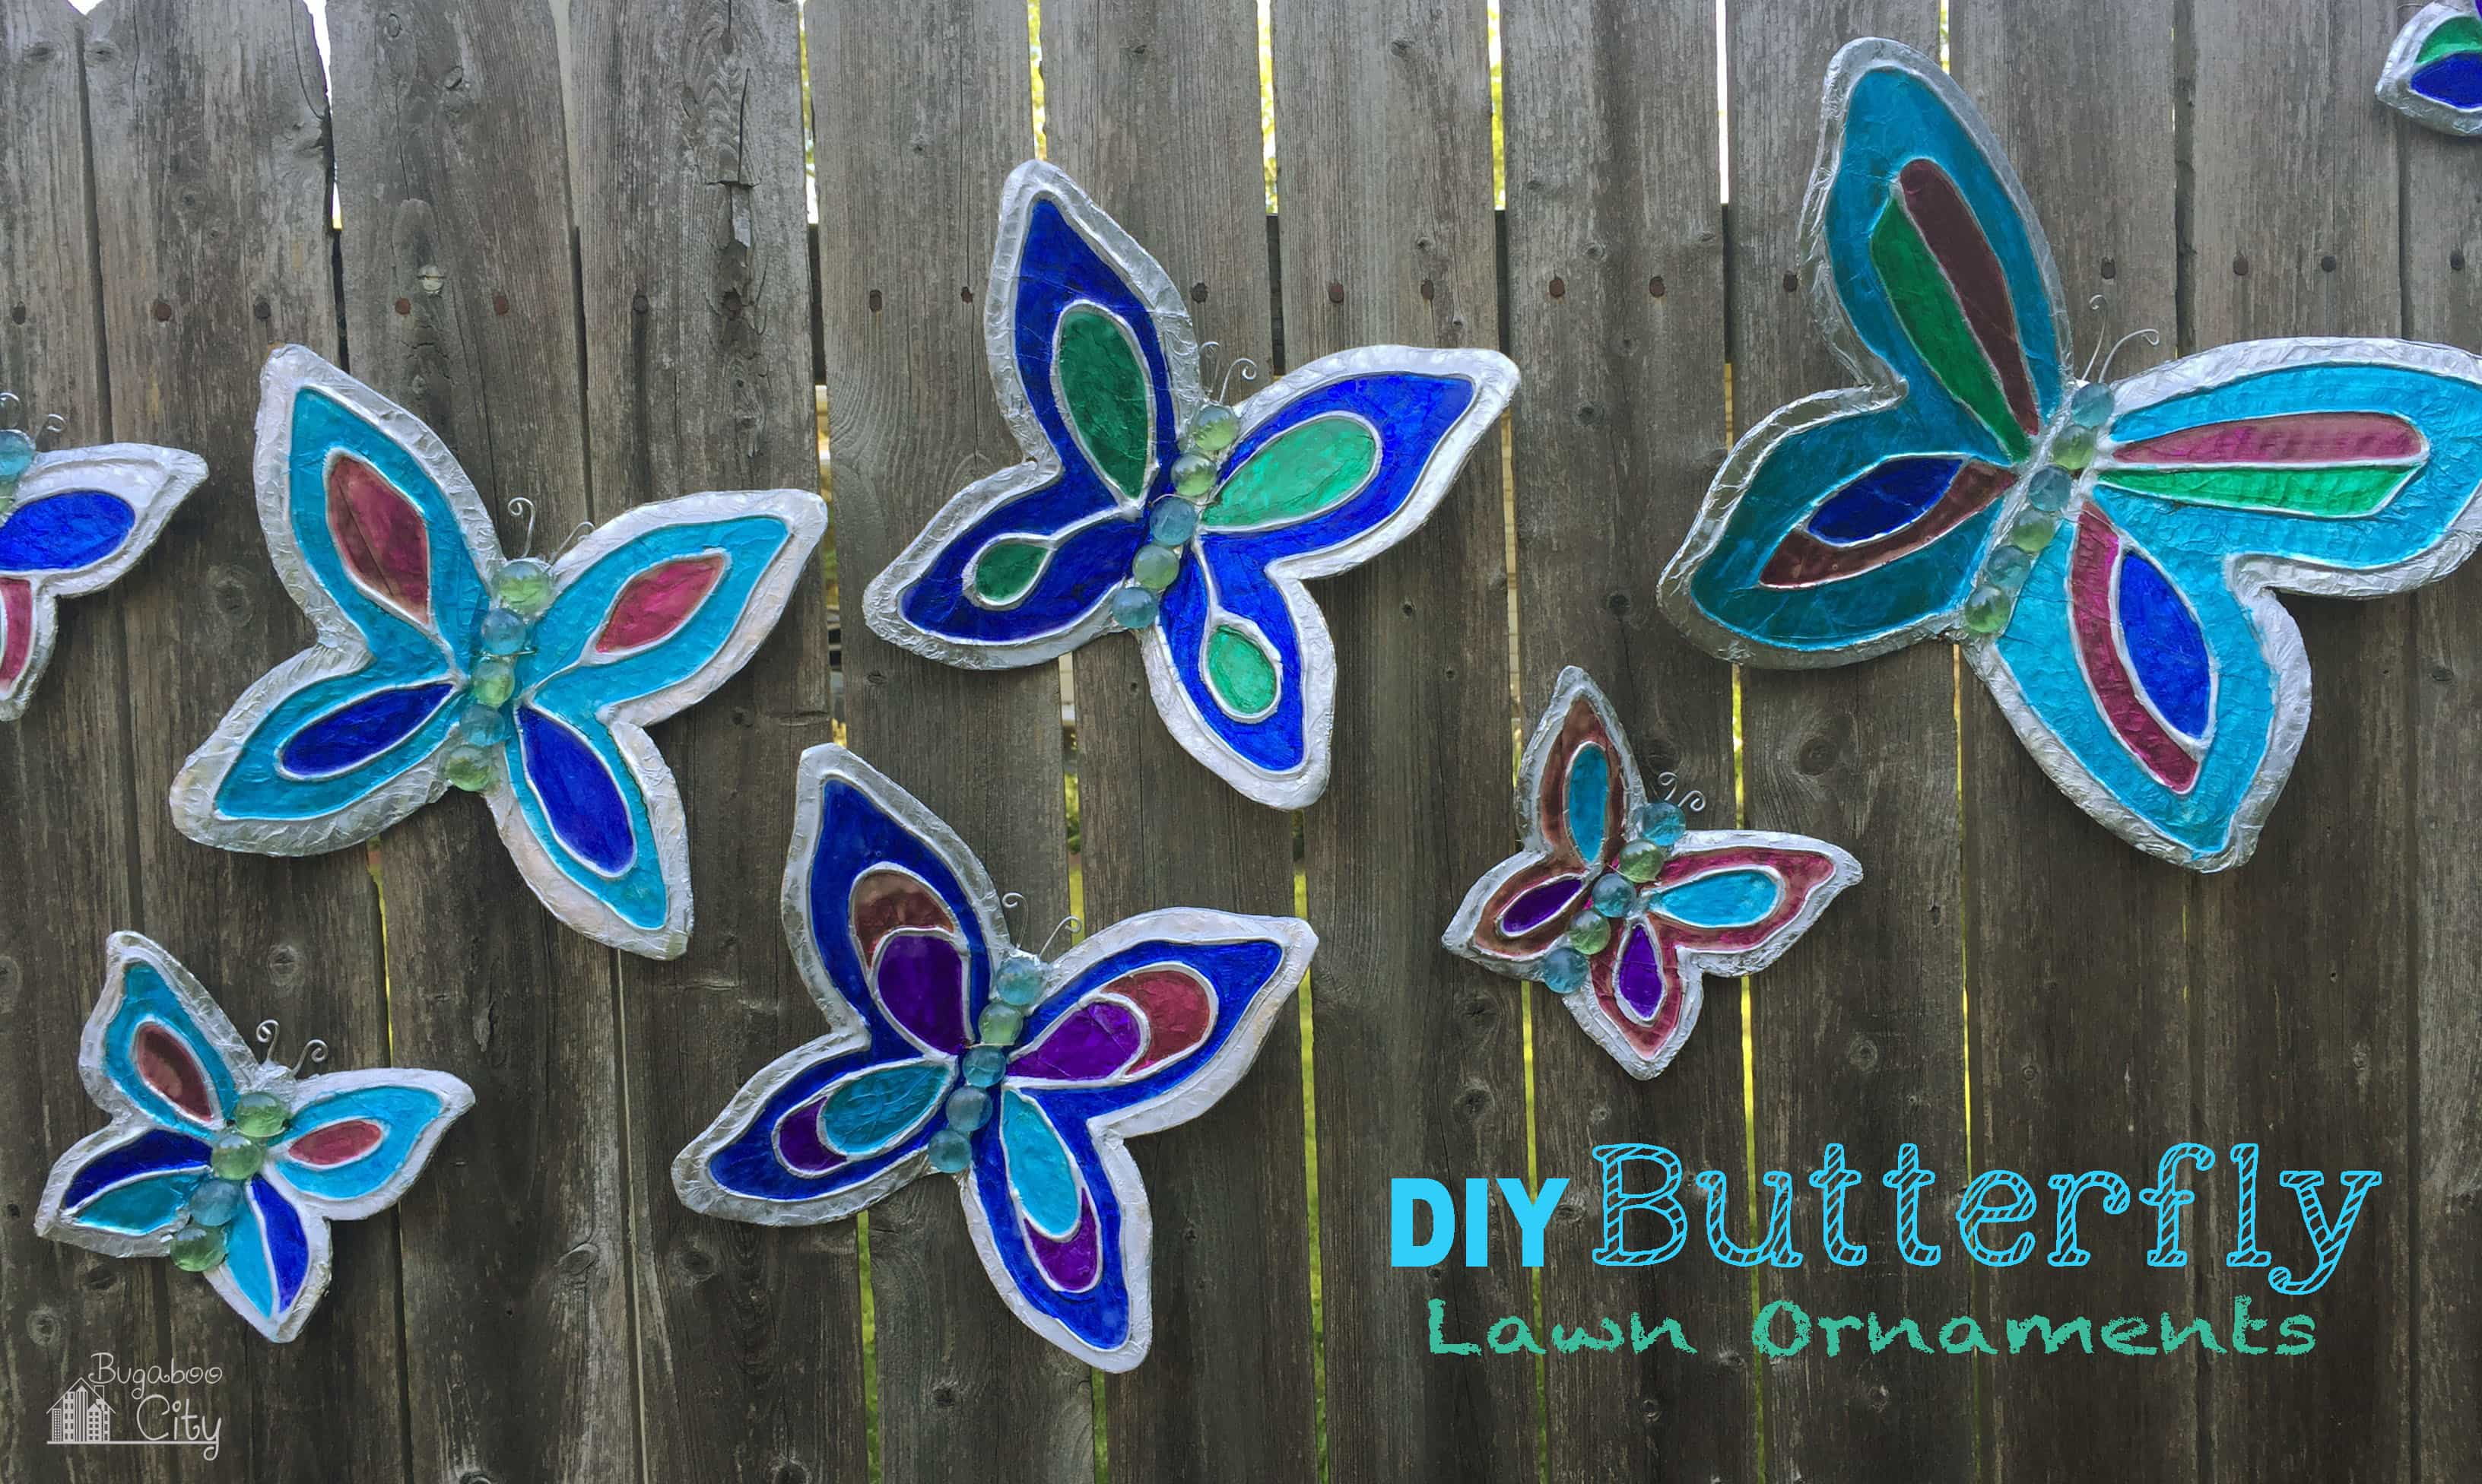 DIY Butterfly Garden Ornament | A Guide to Upcycled Homesteading